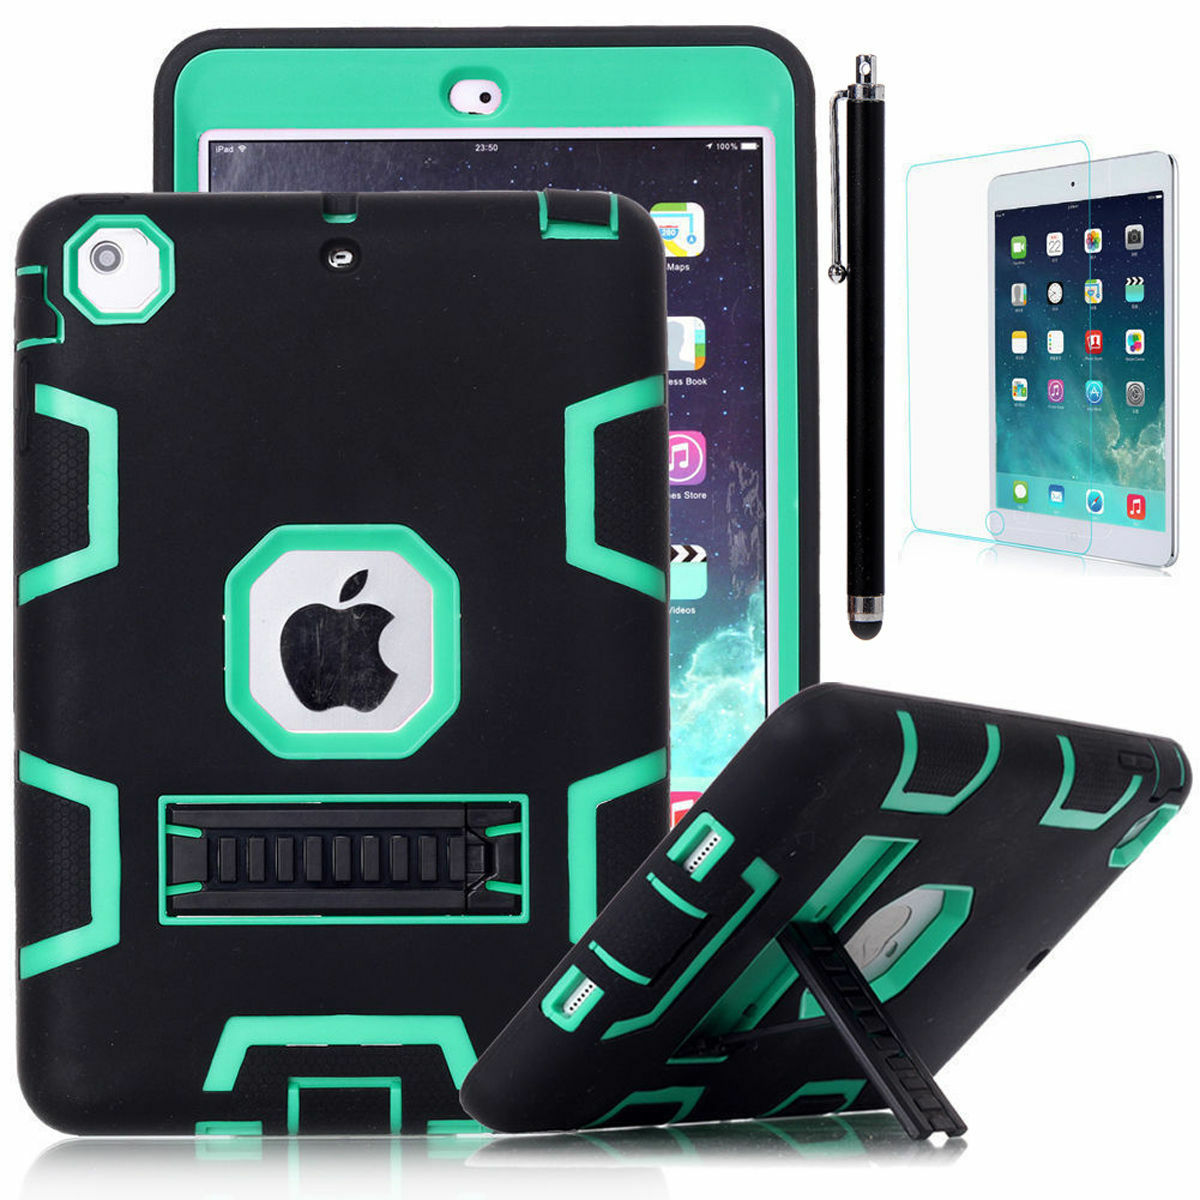 Shockproof Military Heavy Duty Rubber With Hard Stand Case Cover For Apple iPad